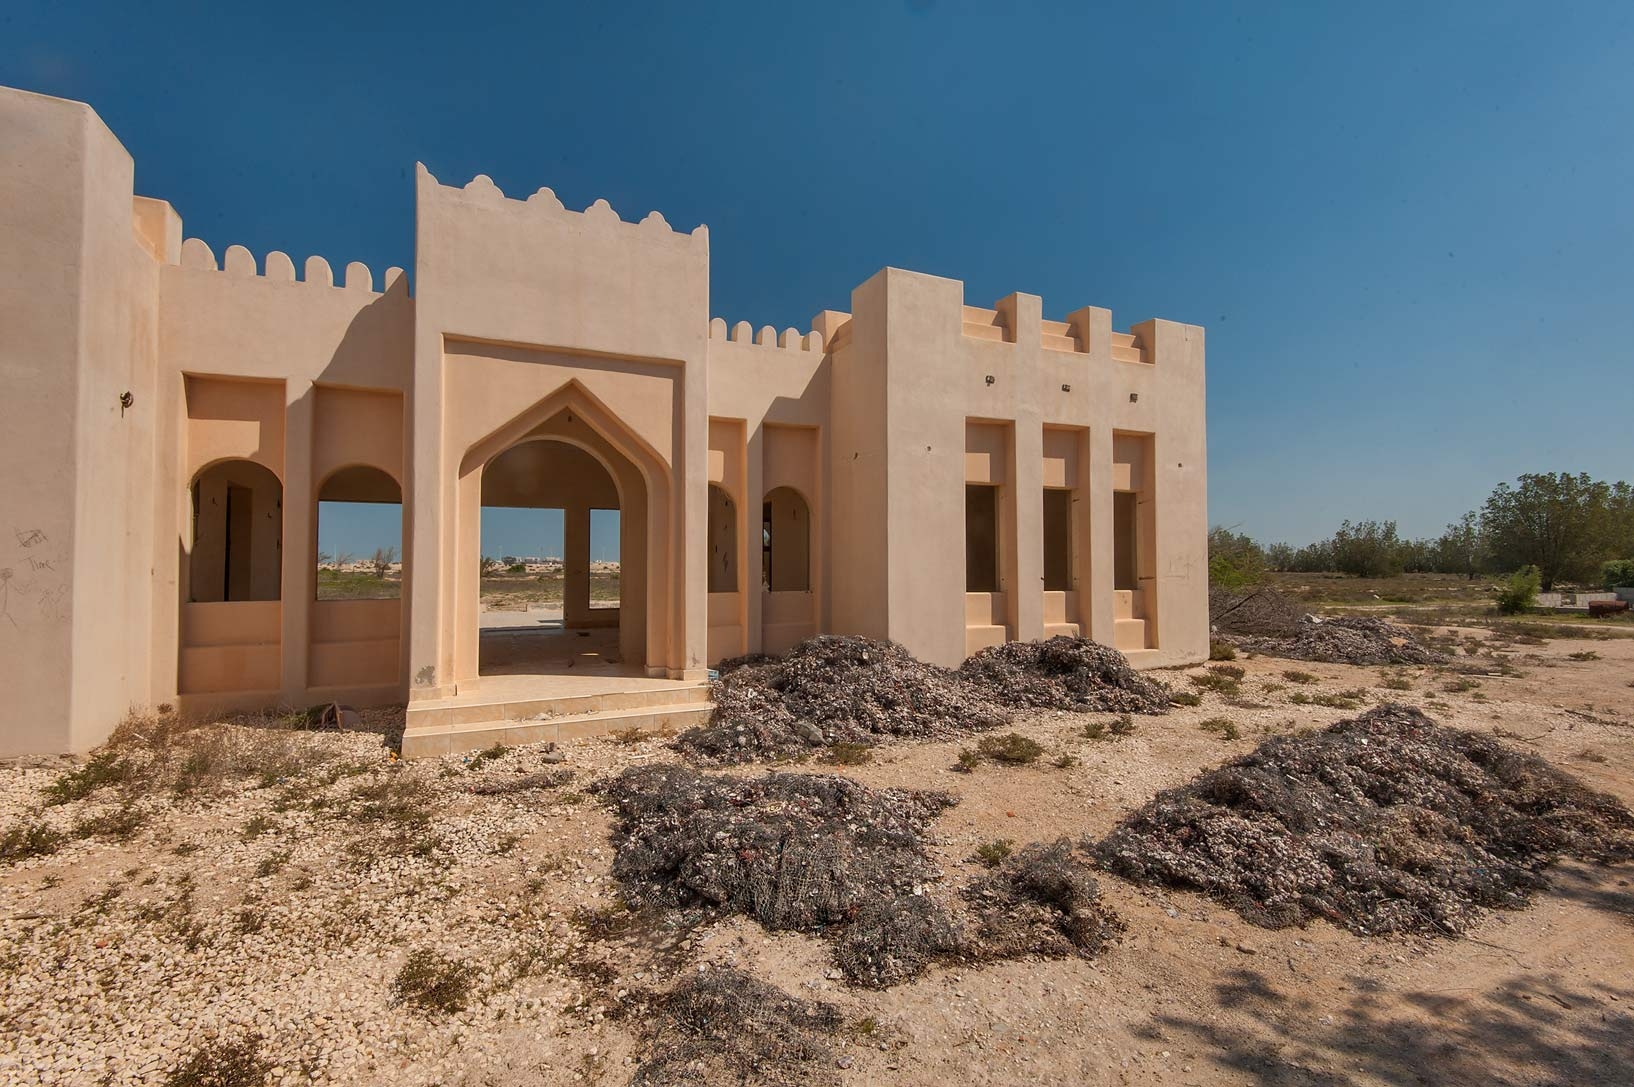 Stone house in area of Ras Laffan farms. North-eastern Qatar